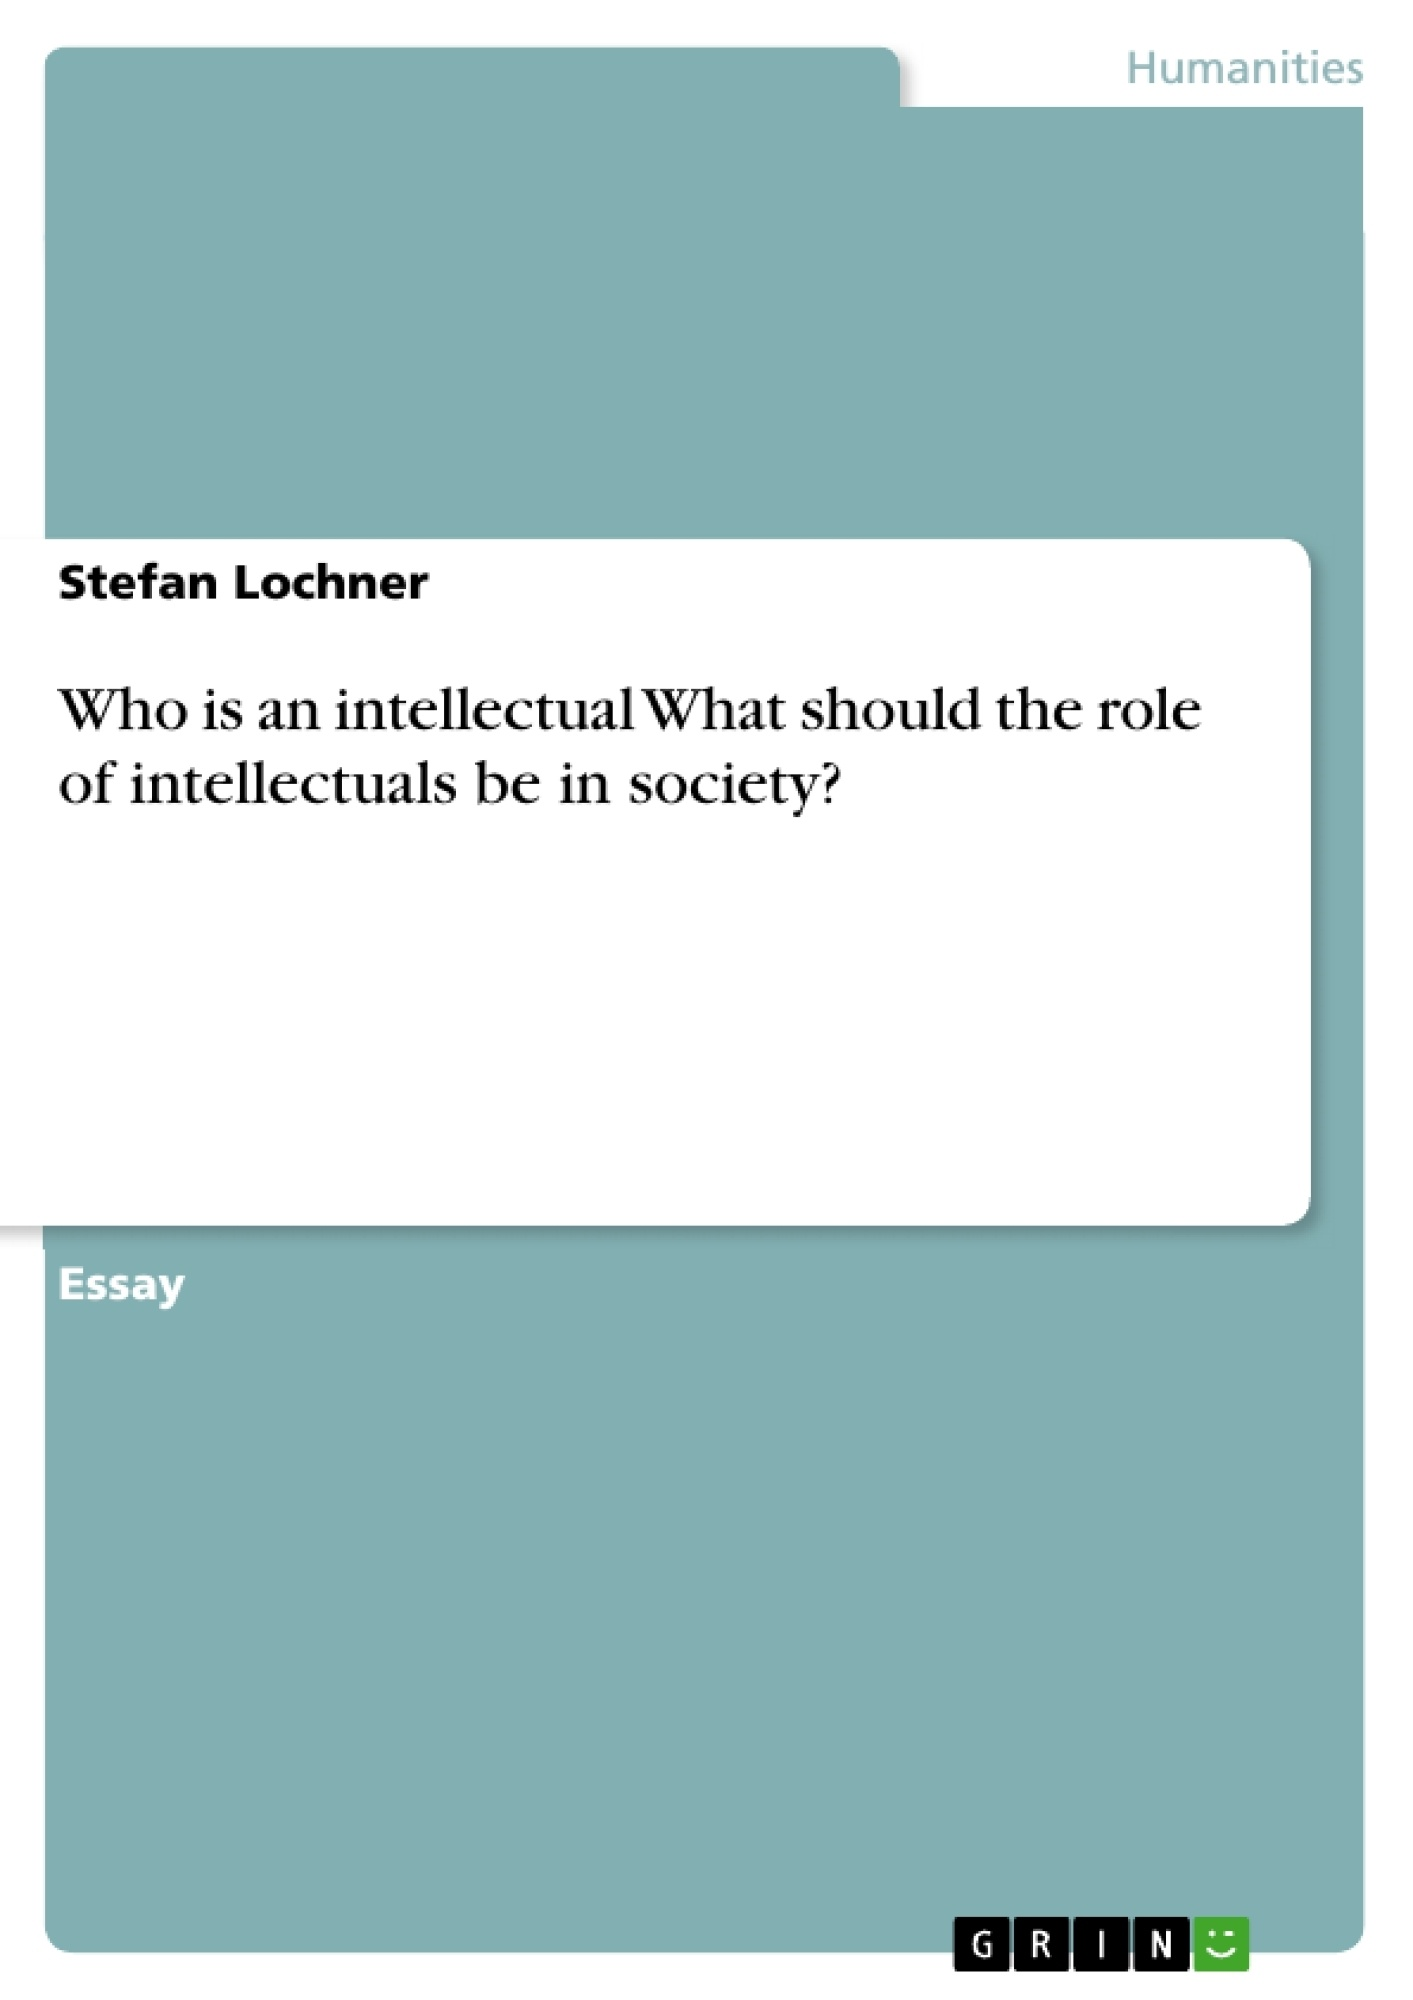 Title: Who is an intellectual  What should the role of intellectuals be in society?